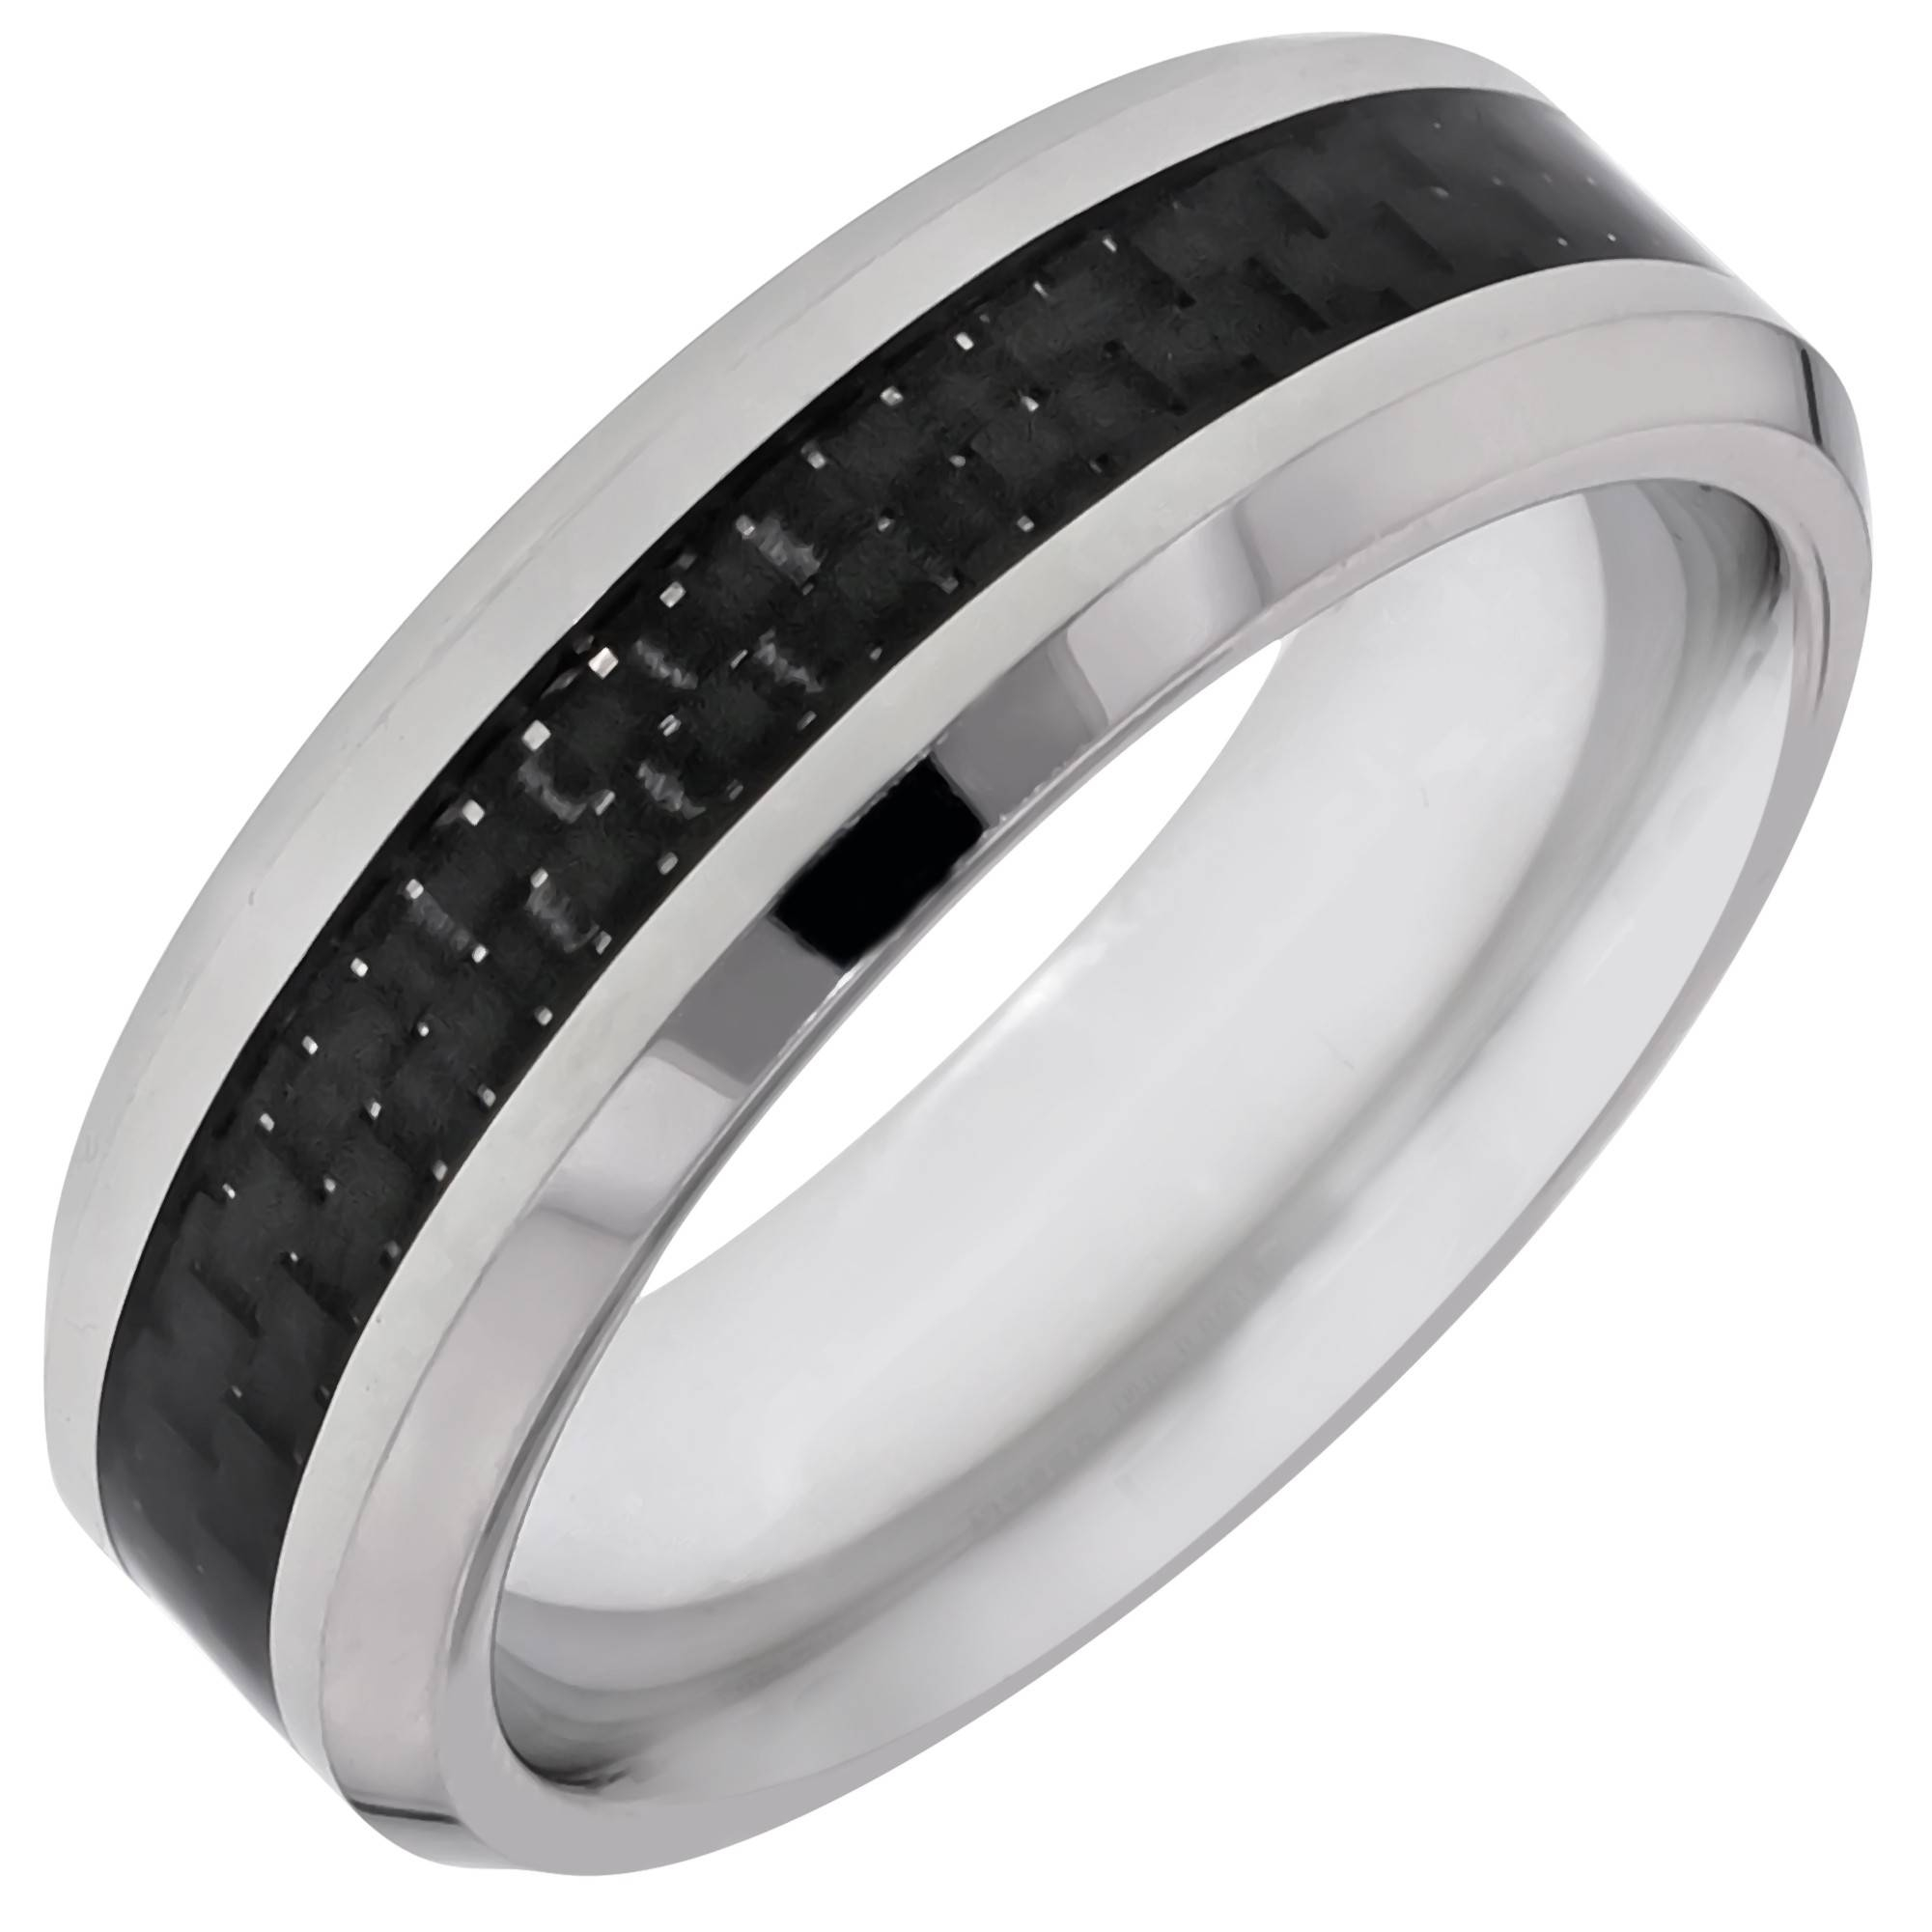 Black Silver Wedding Band Tags : Mens Comfort Band Wedding Rings Regarding Black Platinum Wedding Bands (Gallery 13 of 15)